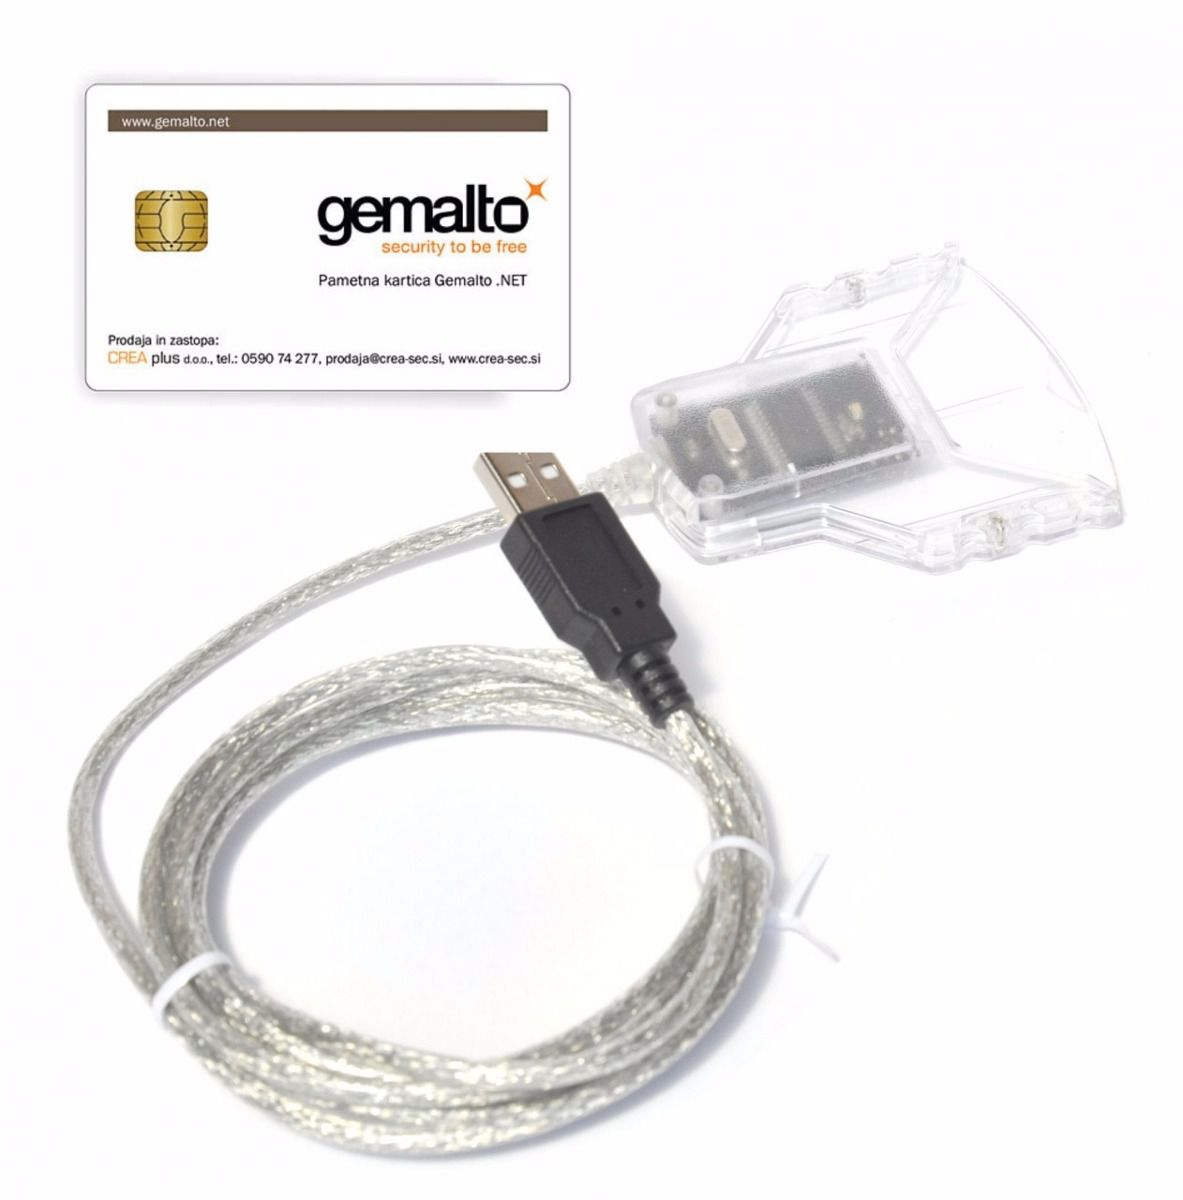 Leitor de Smart Card para certificado digital Gemalto PC USB-TR  CT30   - Mega Computadores